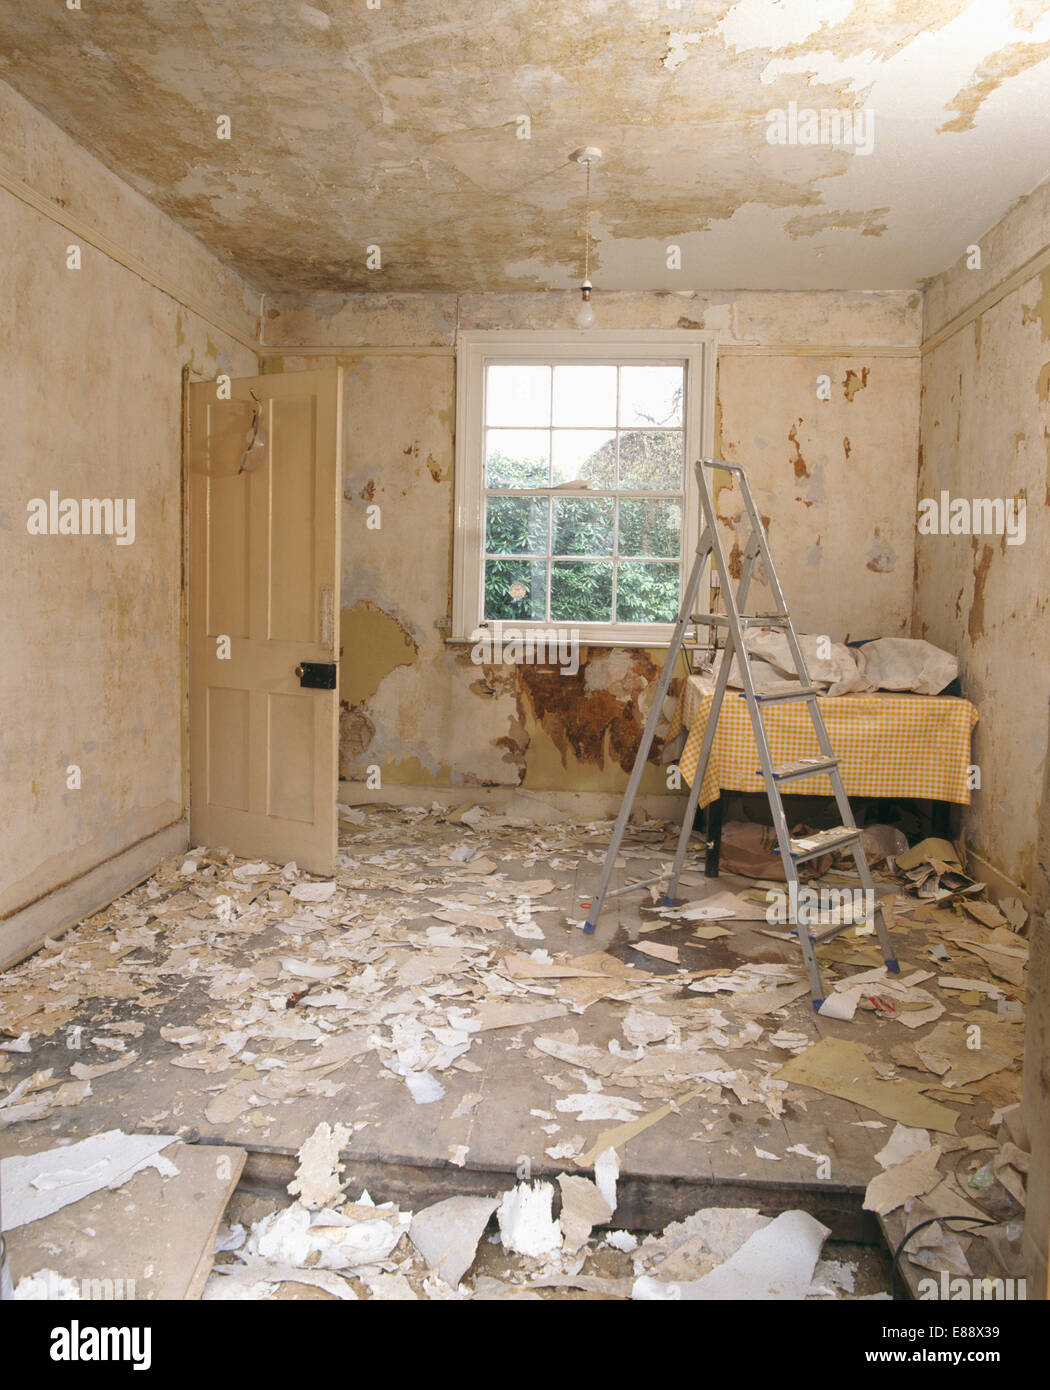 Stepladder in empty room in the middle of renovation, old wallpaper on floor Stock Photo